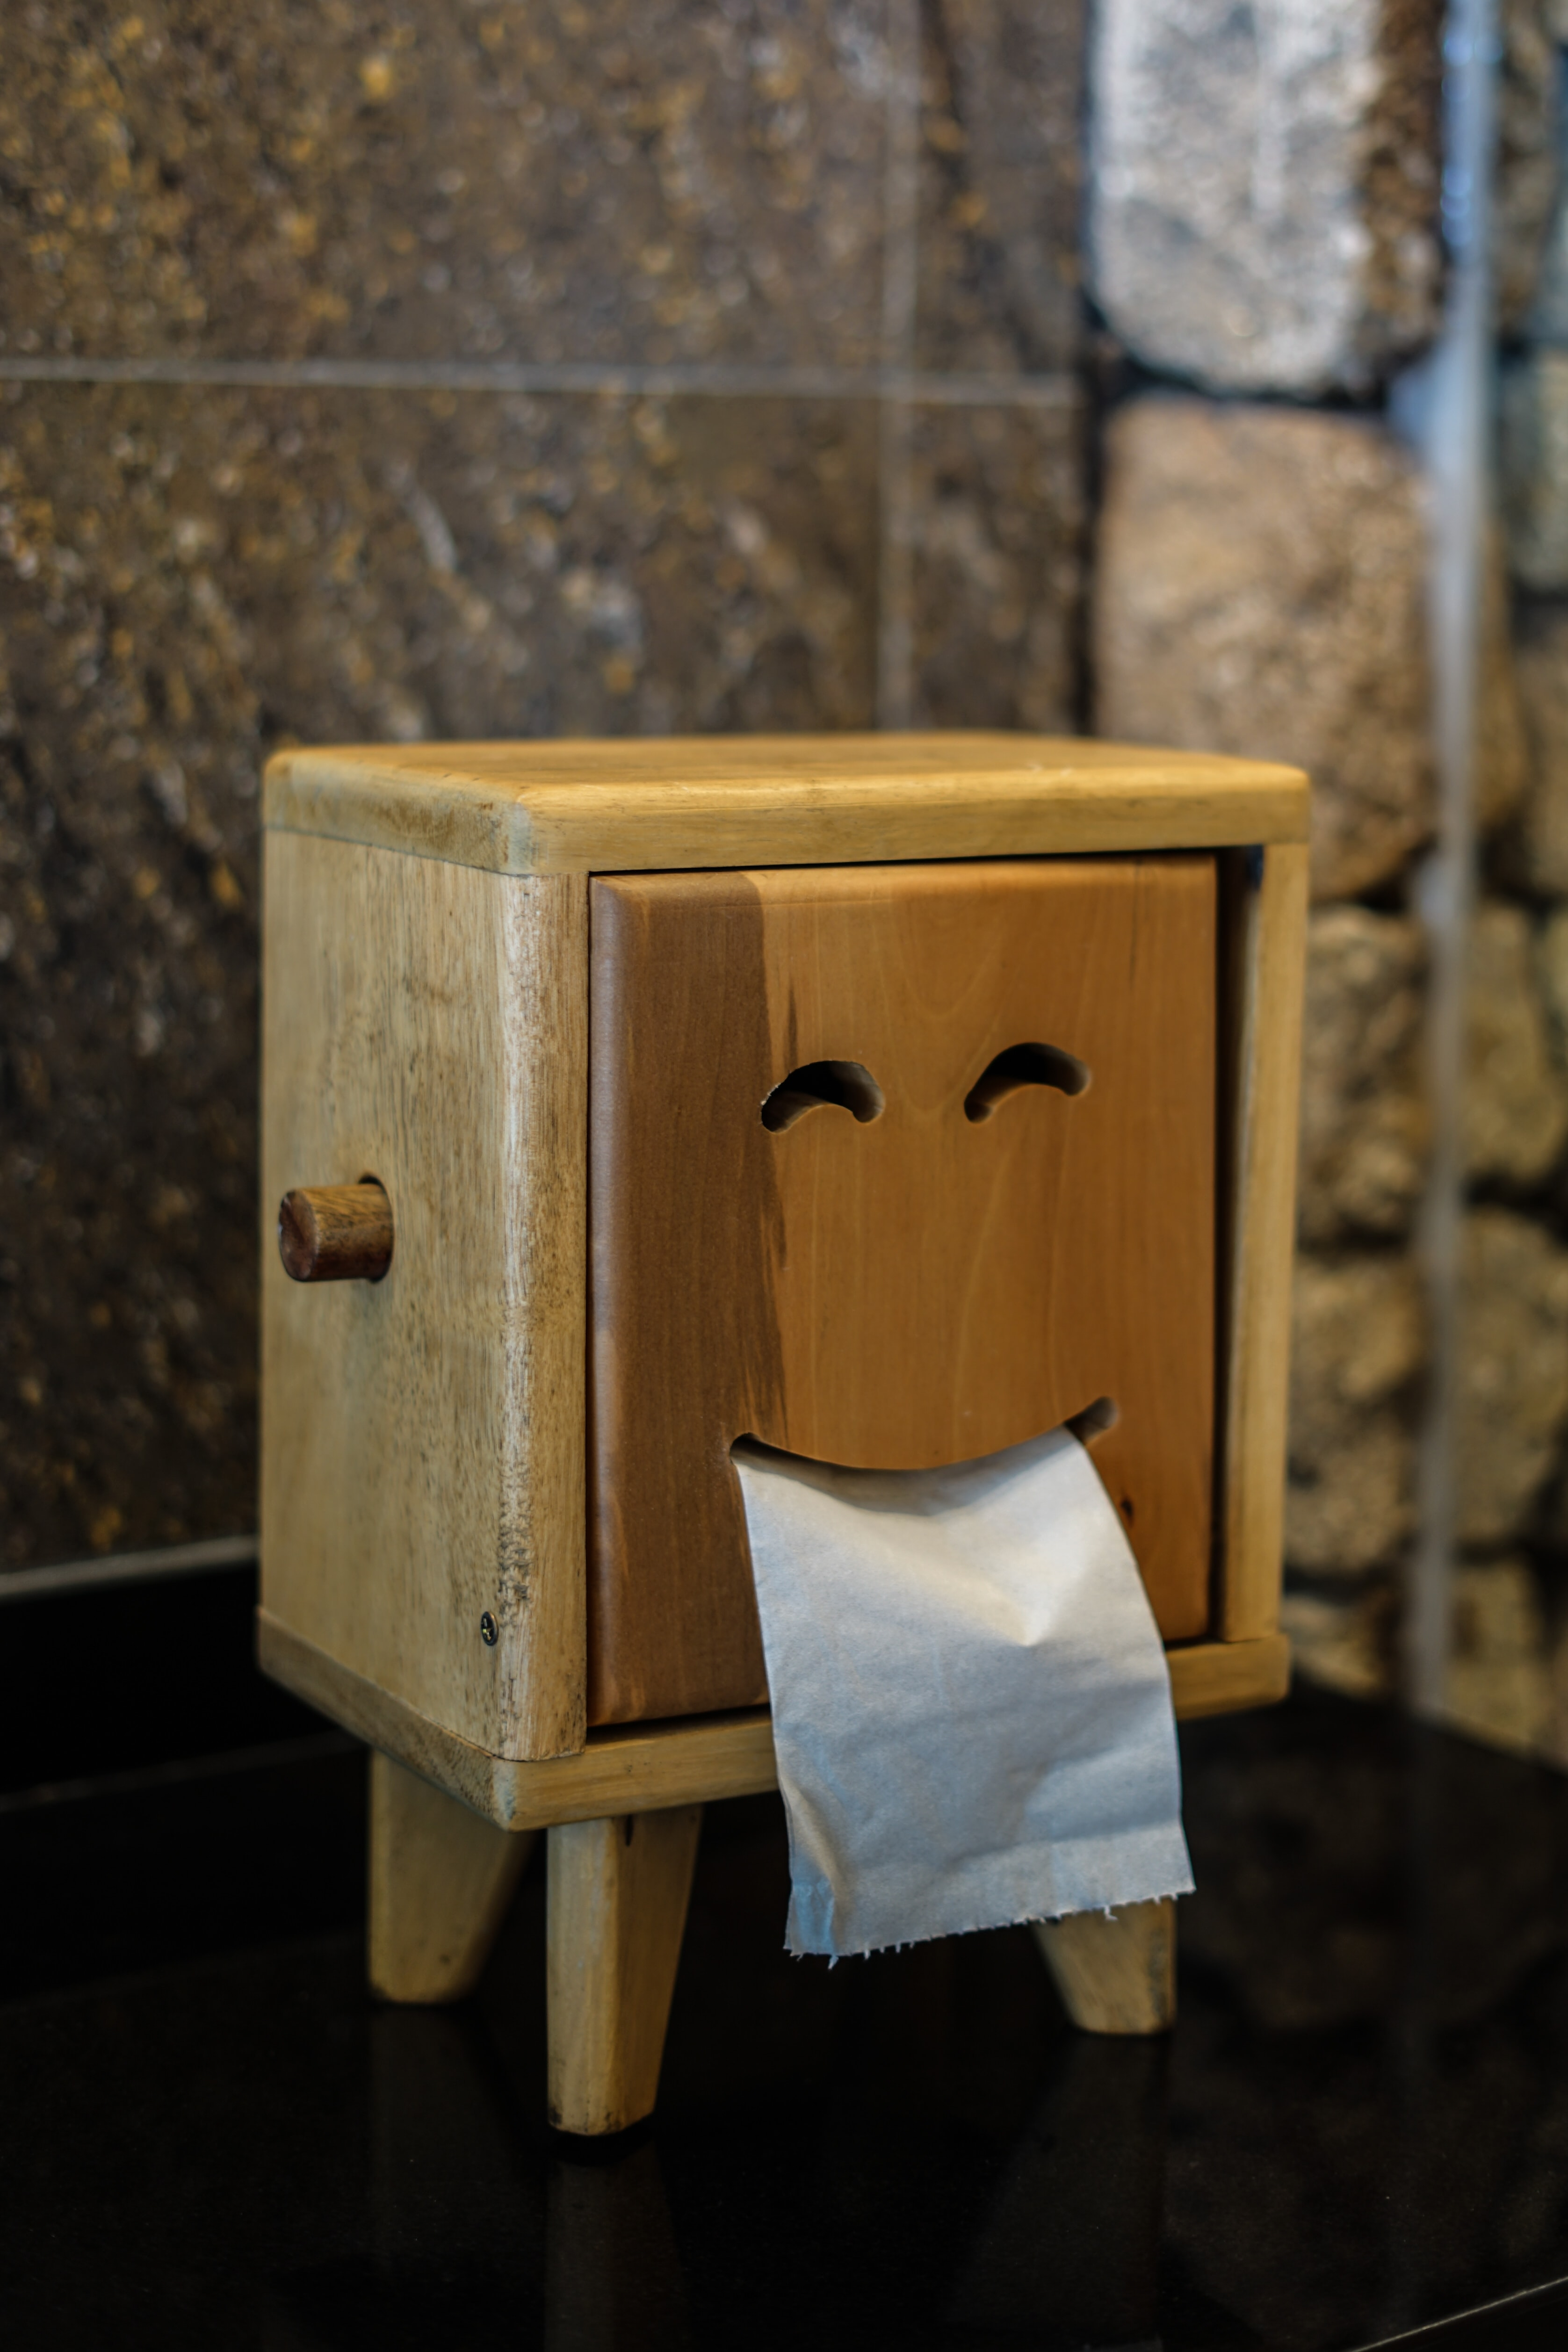 Toilet Paper Day: 6 Fun Facts About Toilet Paper